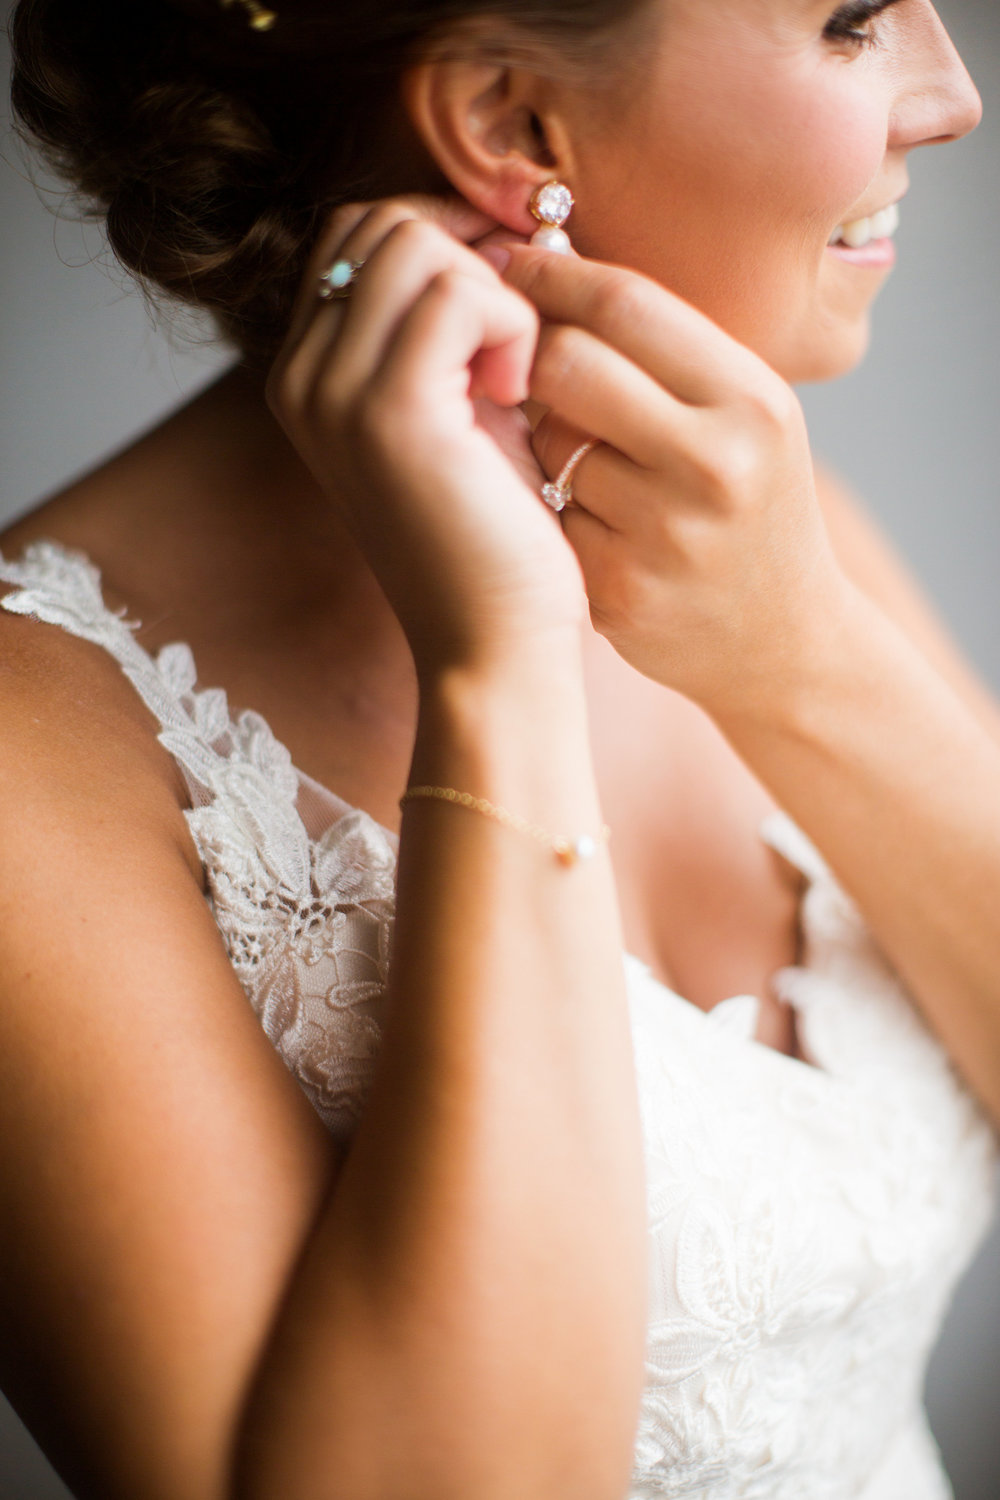 Kaylie + Travis | Sixpence Events wedding planner in the midwest | Studio KH photography | bridal portrait | bride putting earrings on